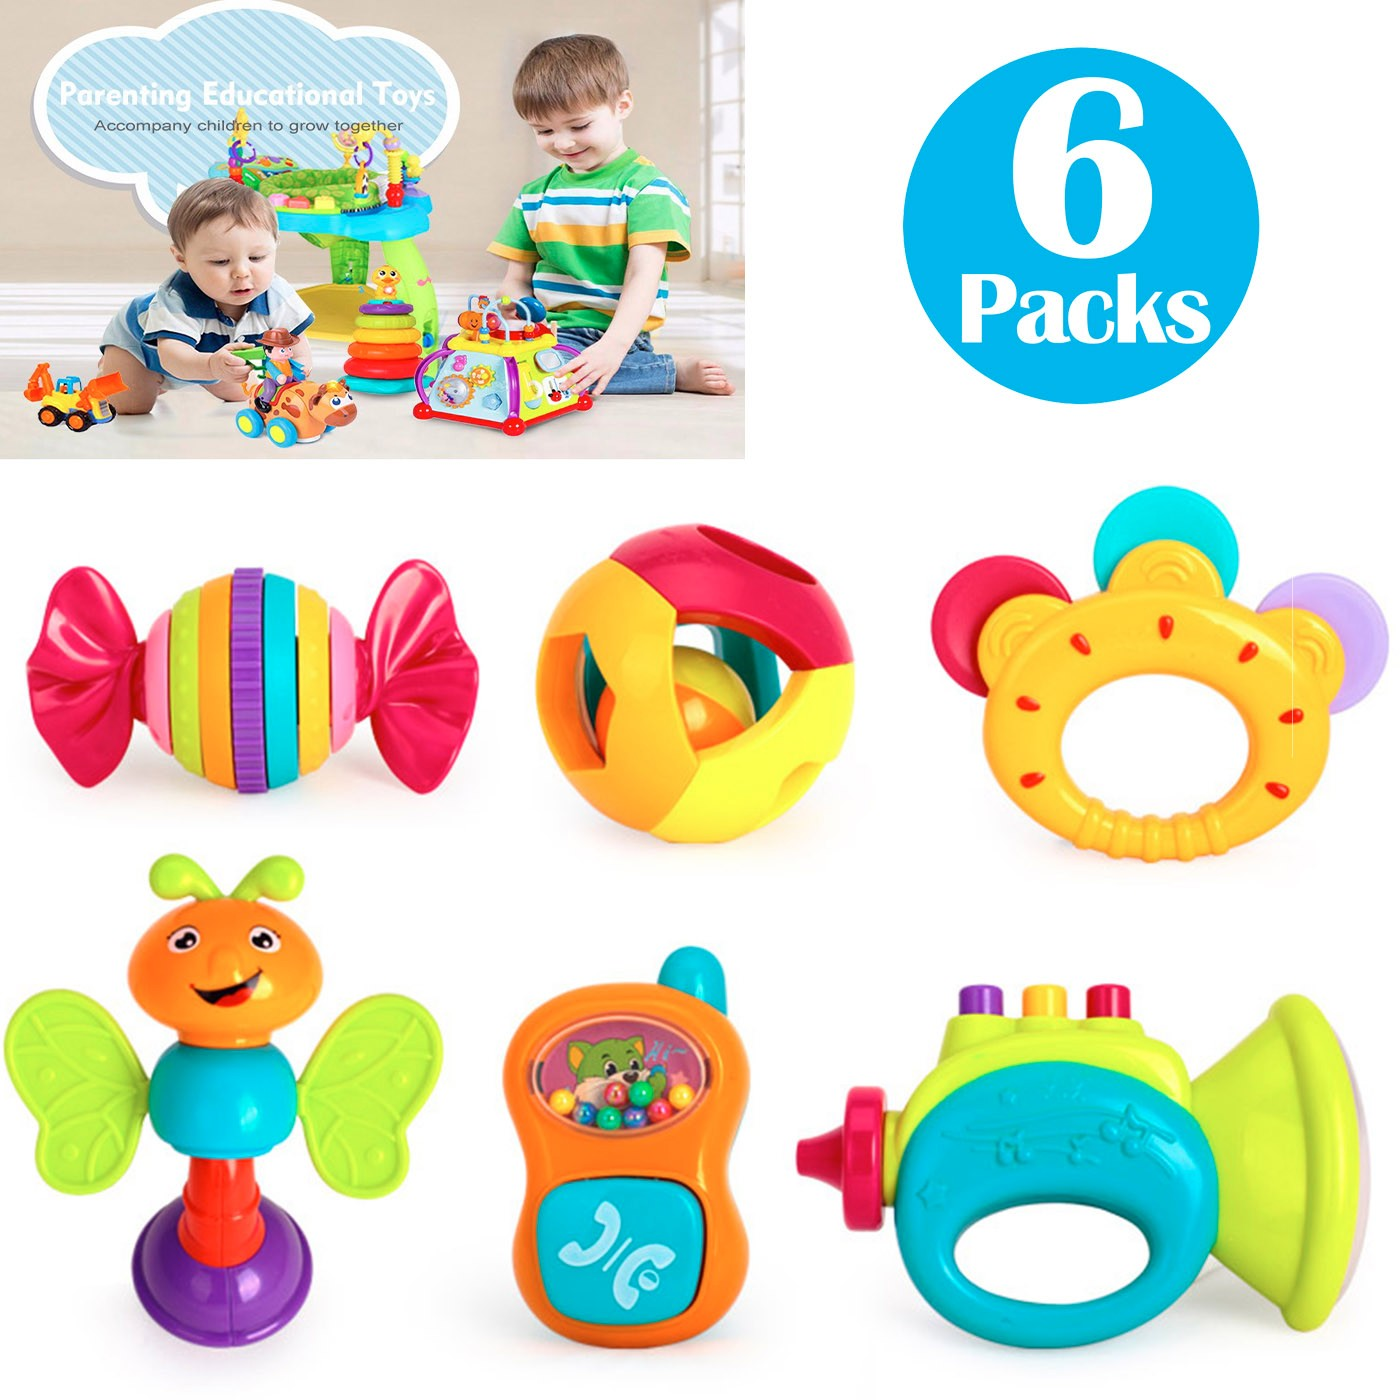 6 Baby Rattles Teether, Ball Shaker, Grab and Spin Rattle, Musical Toy Gift Set for Baby Infant, Newborn